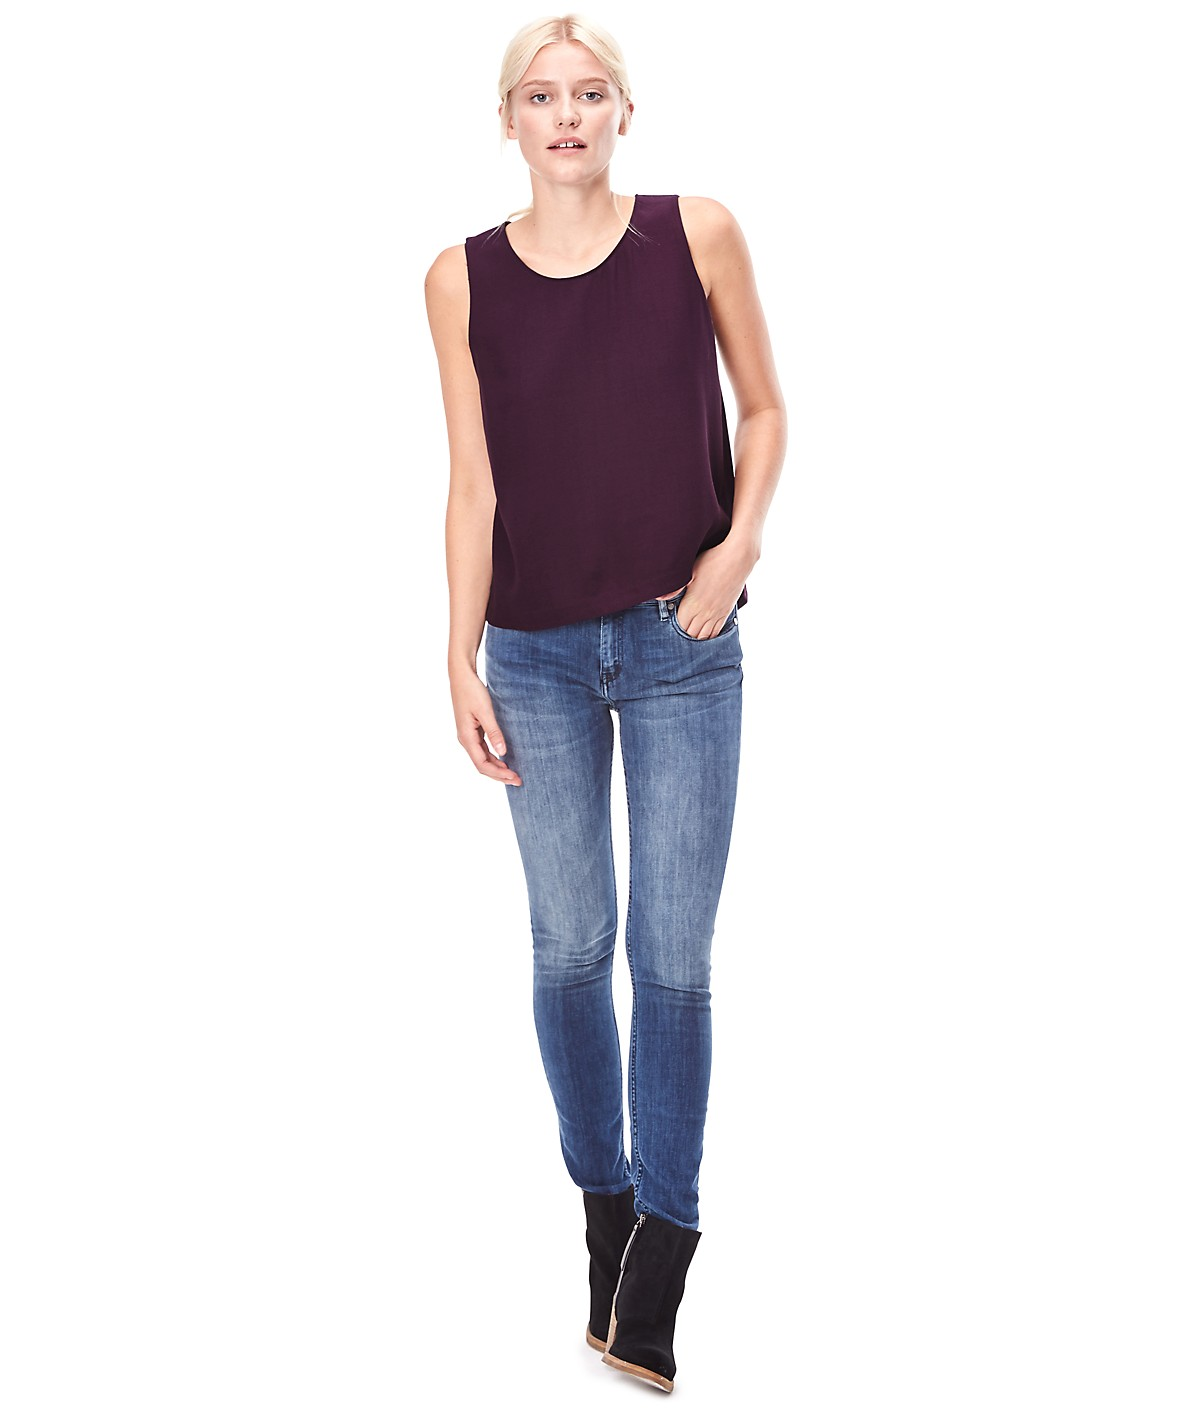 Top W2164103 from liebeskind